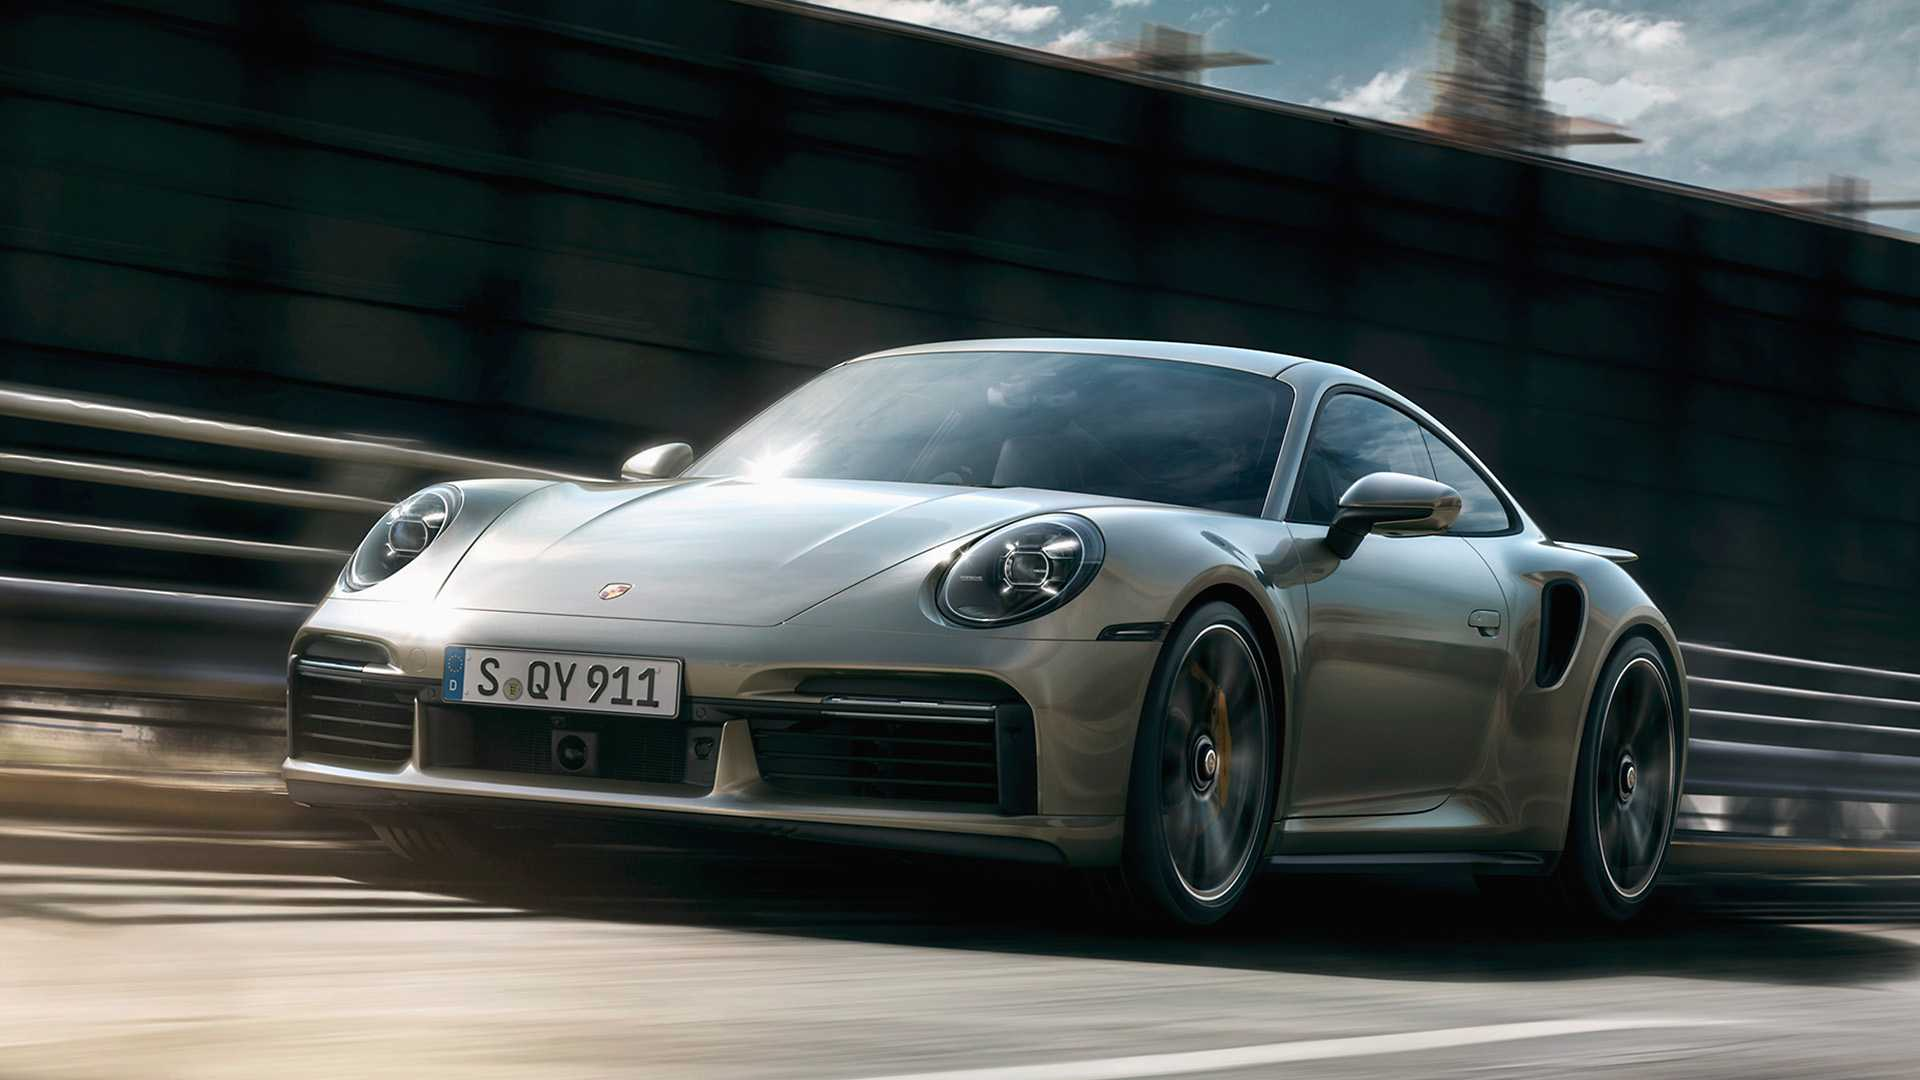 2021 Porsche 911 Turbo S Coupe, Cabriolet Revealed With 640 HP